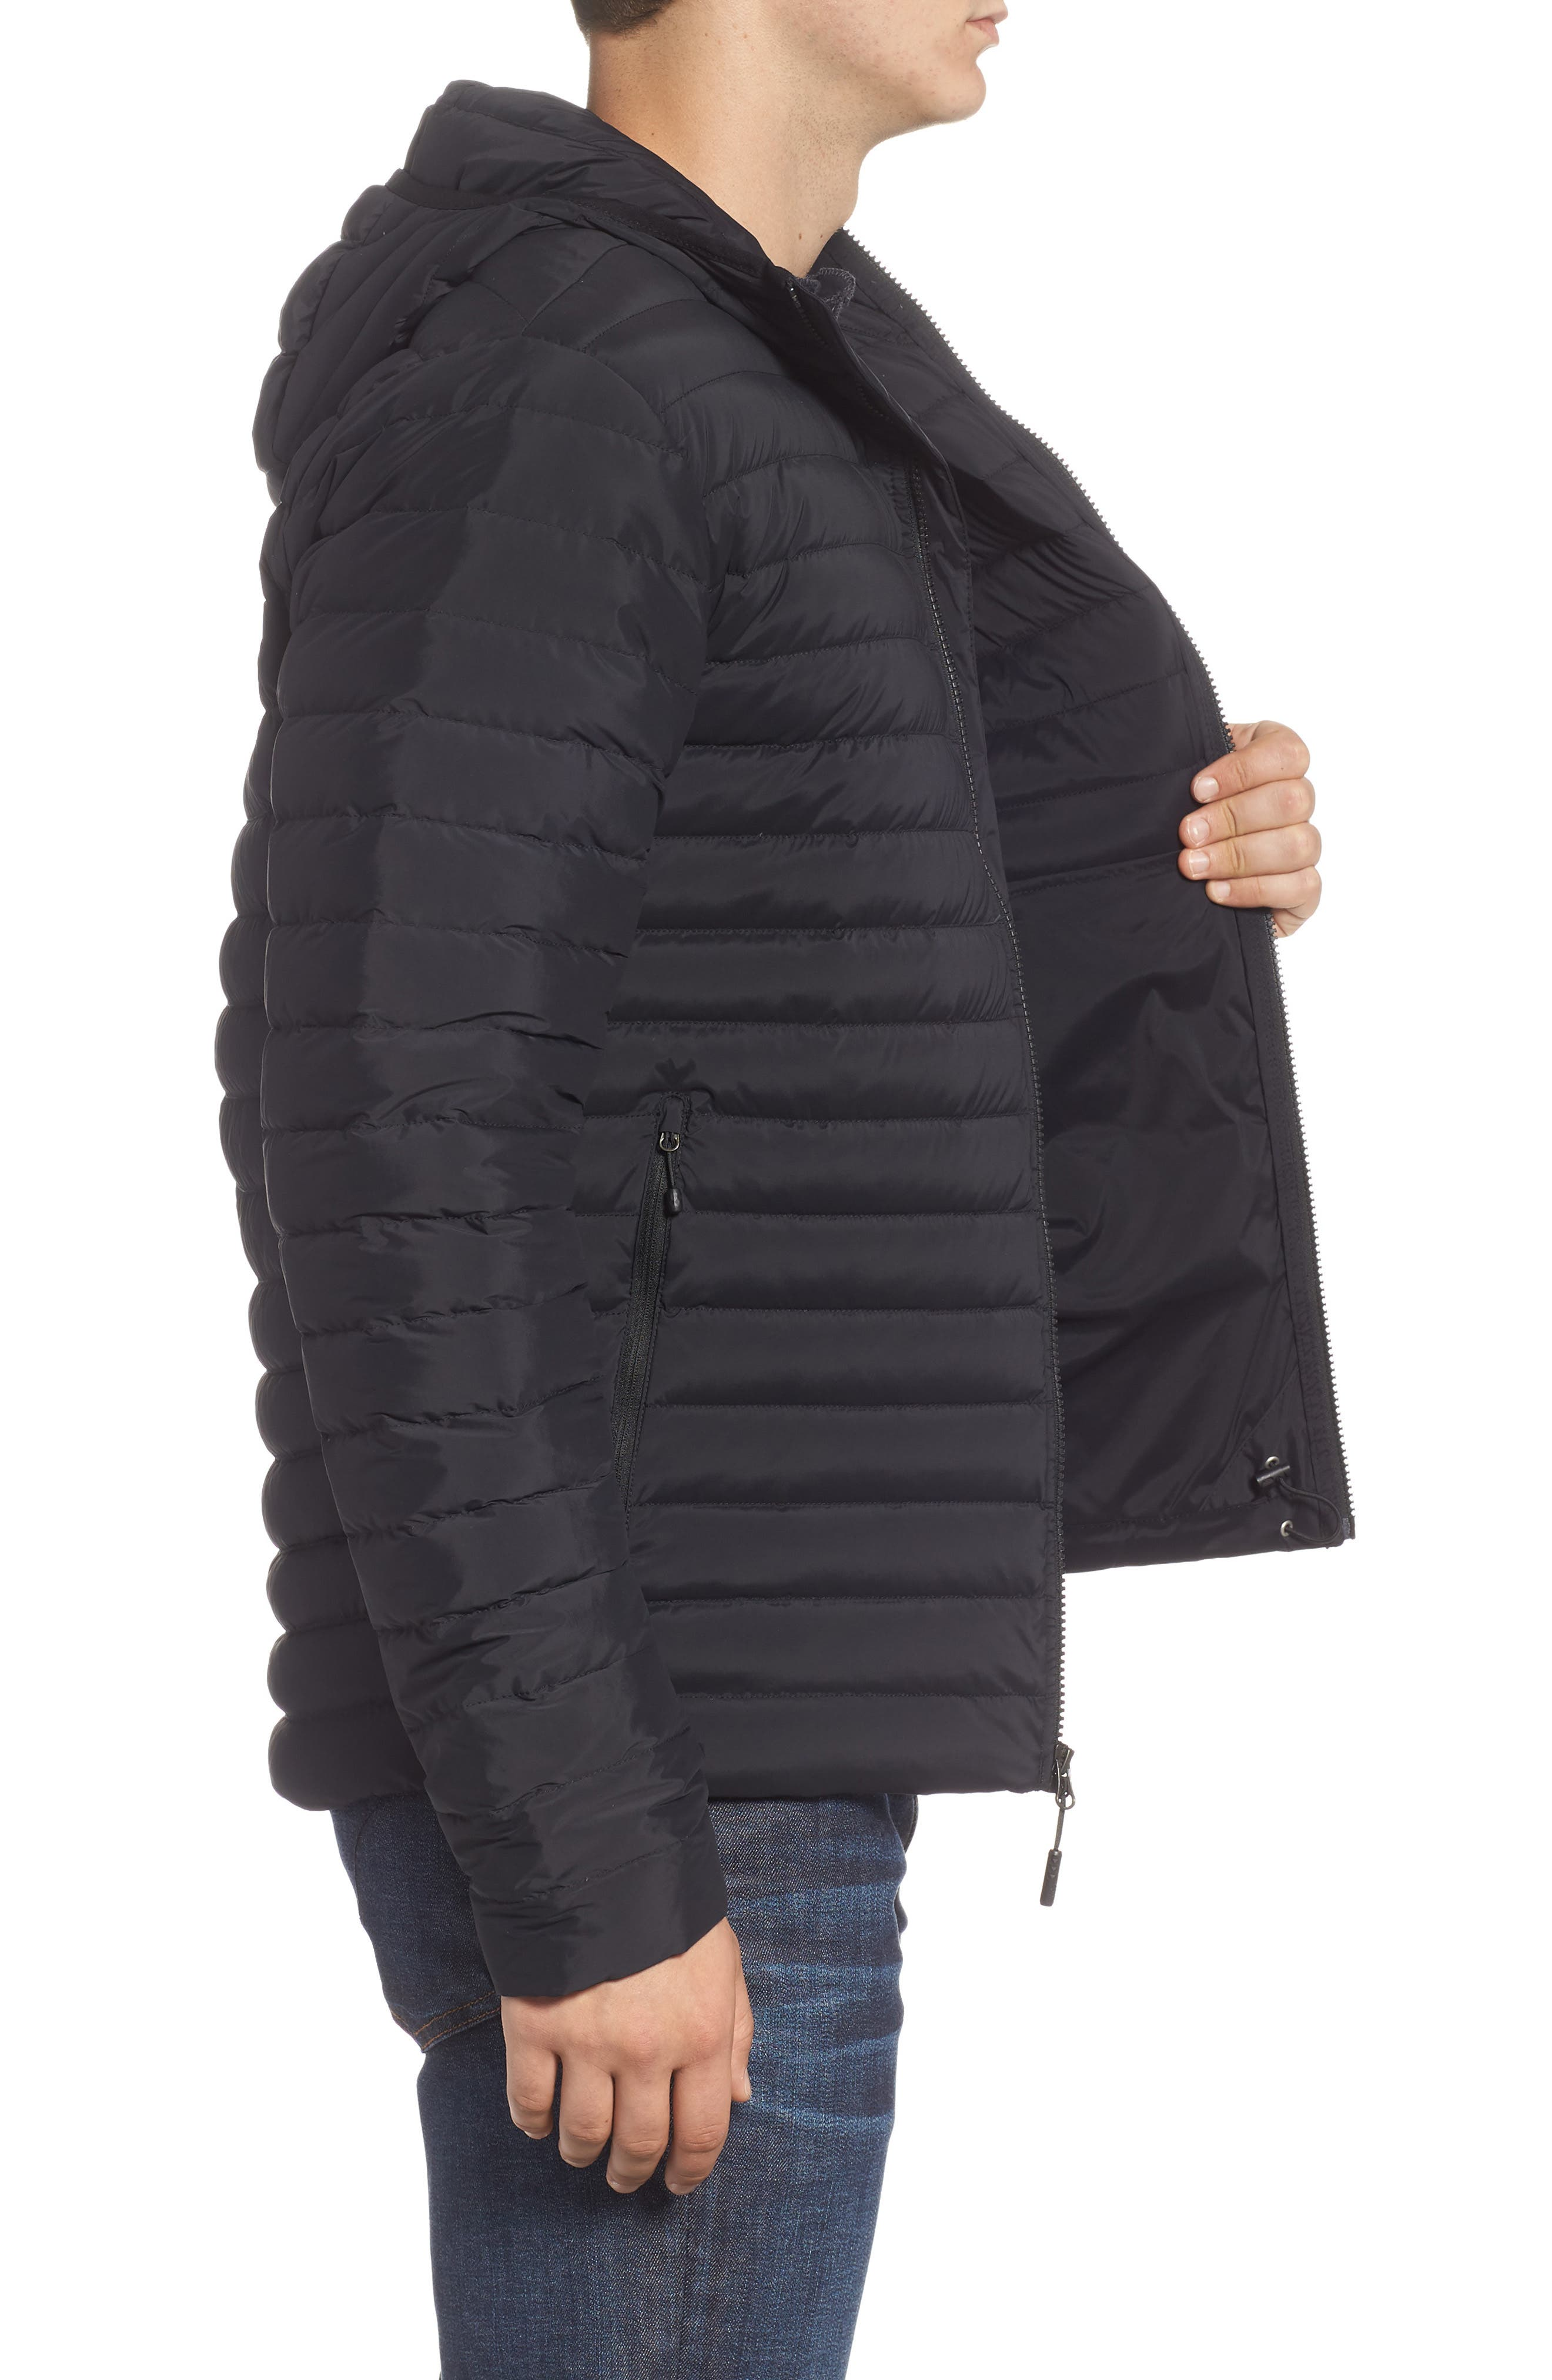 THE NORTH FACE, Packable Stretch Down Hooded Jacket, Alternate thumbnail 4, color, 001